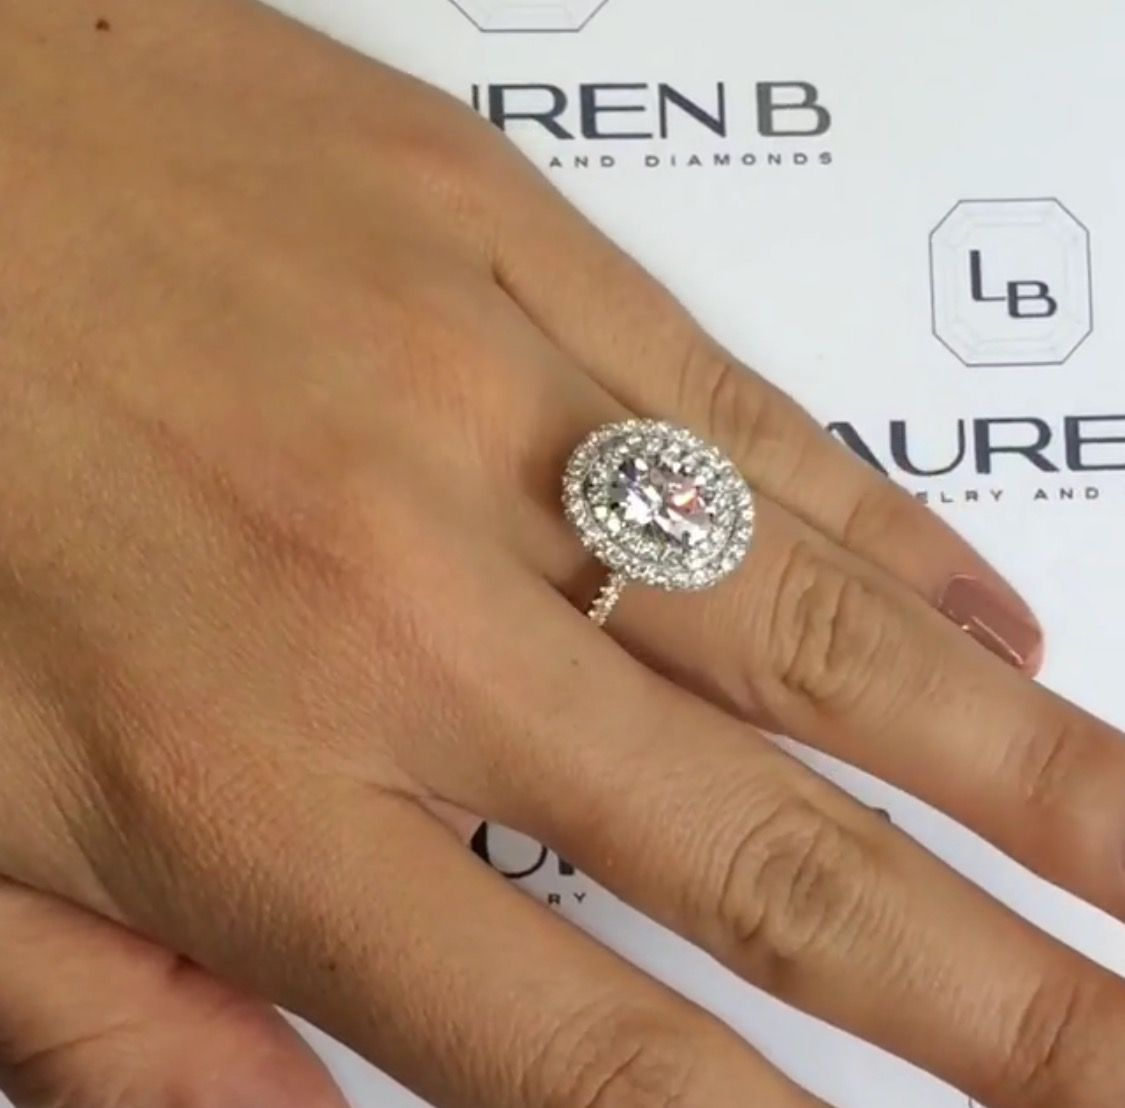 #obsesseddddddd Lauren B Double Halo Twotone Engagement Ring #moissanite  With Rose Gold